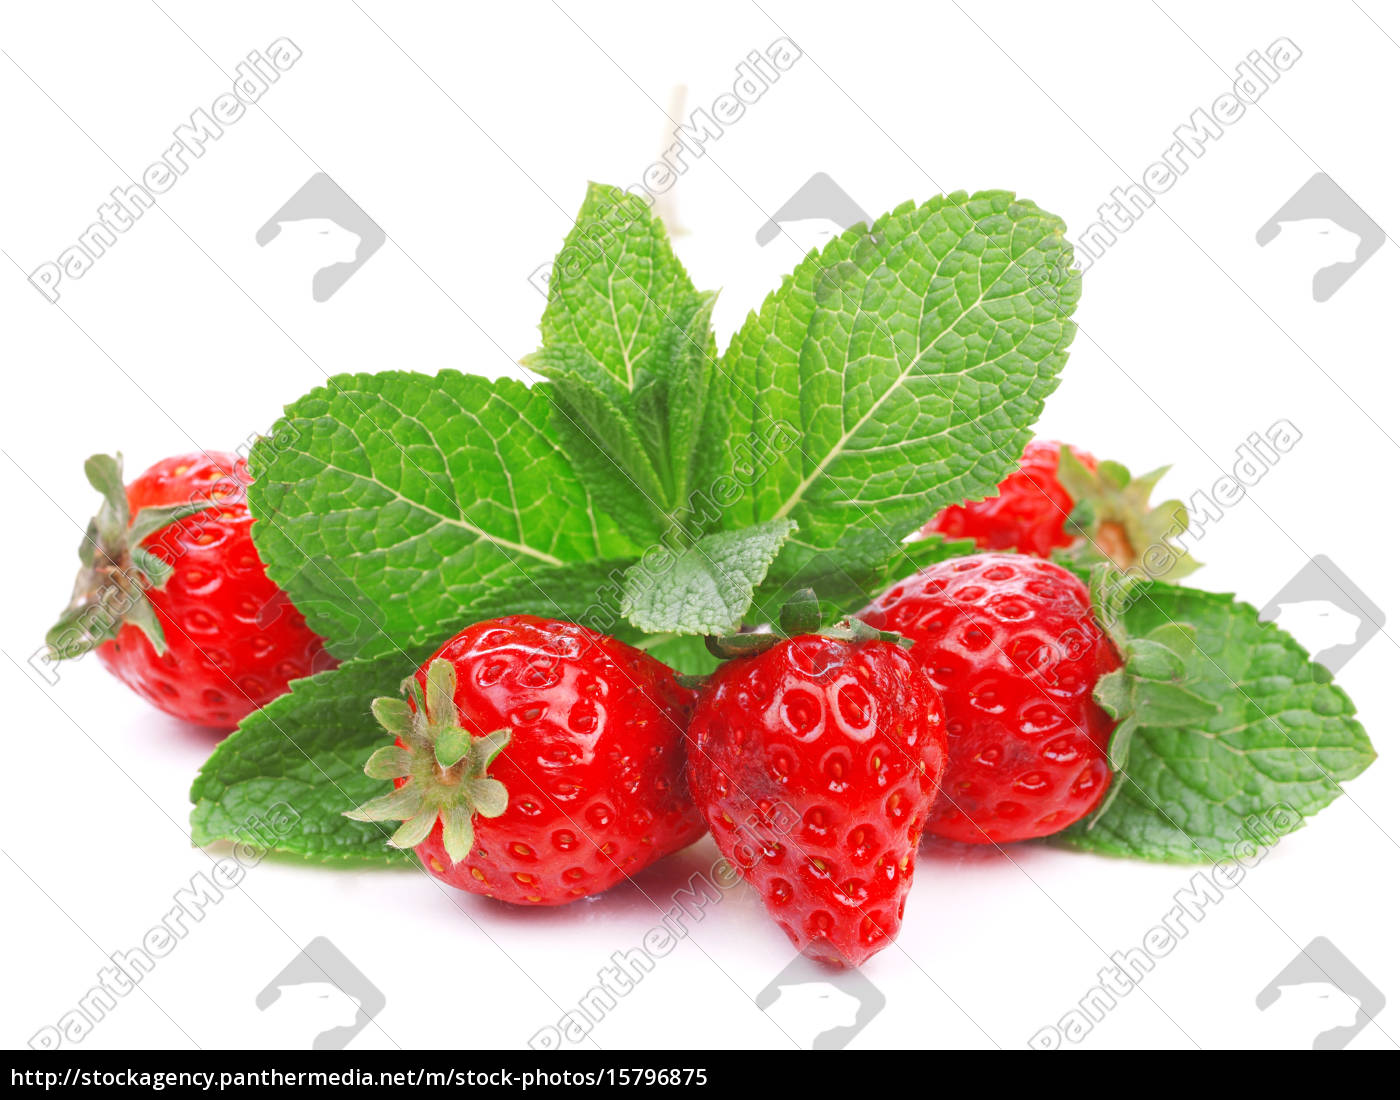 strawberries, strawberries, strawberries, strawberries, strawberries, strawberries, strawberries, strawberries - 15796875